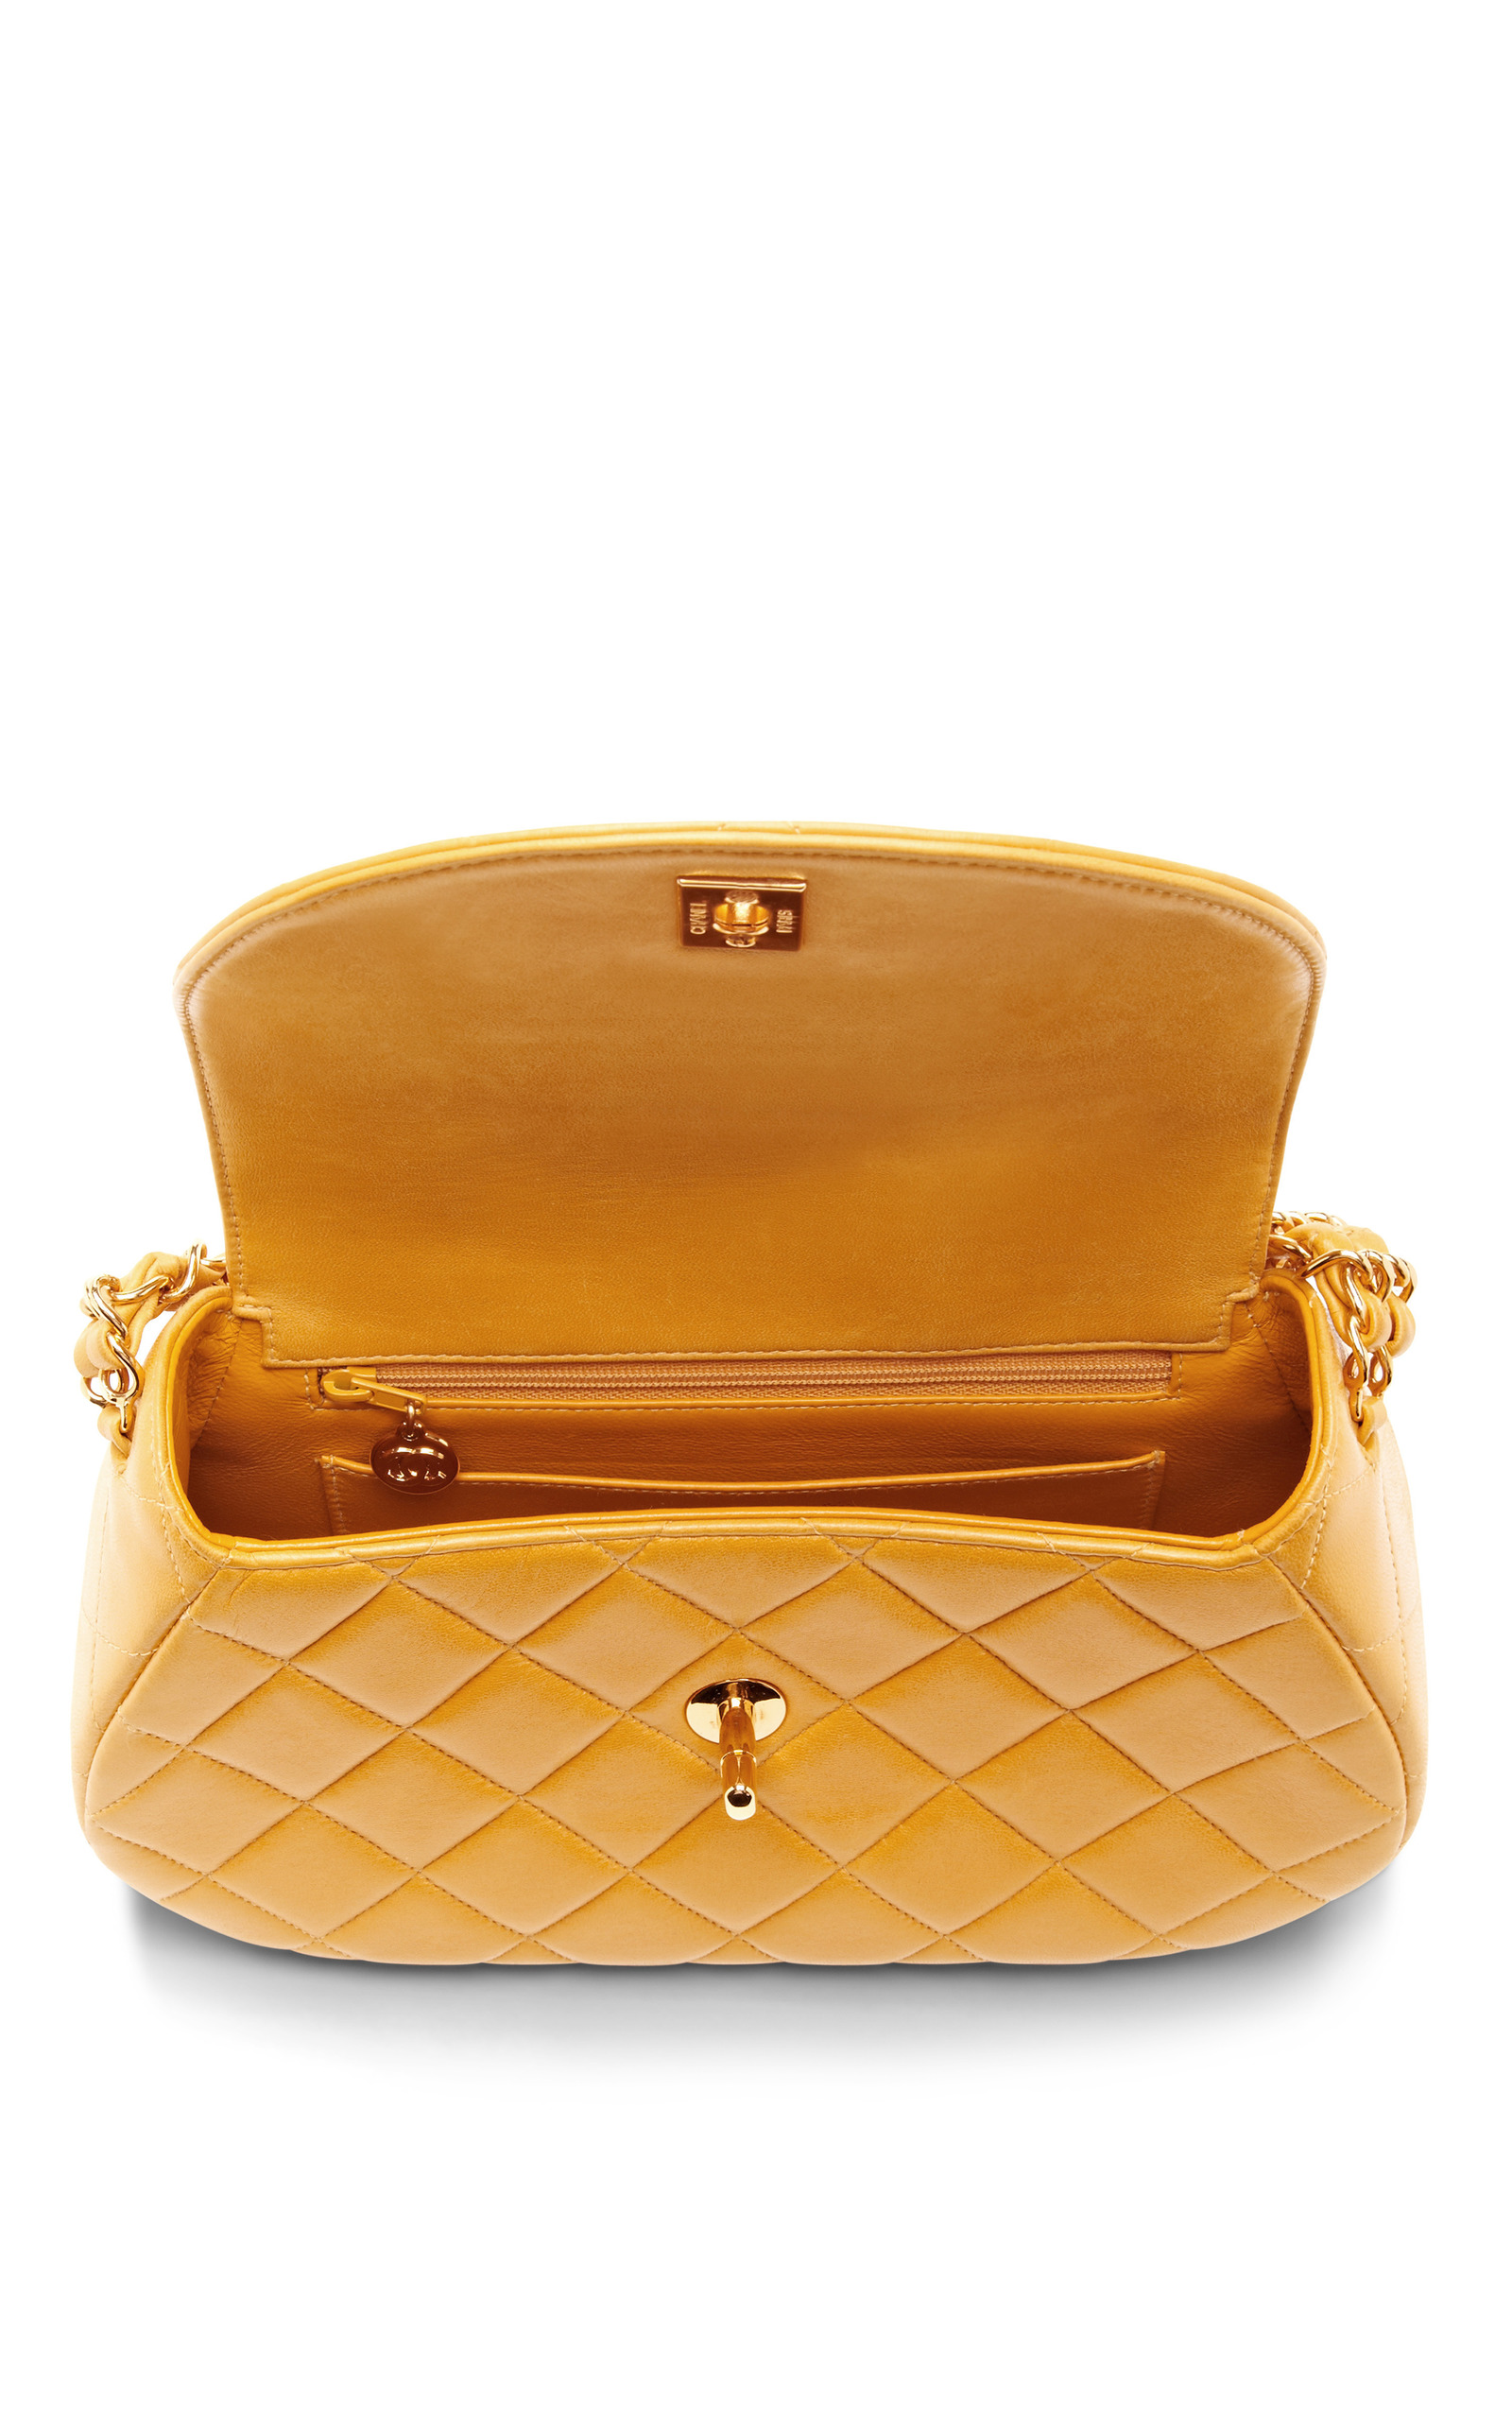 98bbf17cac25 Collectible JacketsVintage Chanel Yellow Quilted Round Flap Bag. CLOSE.  Loading